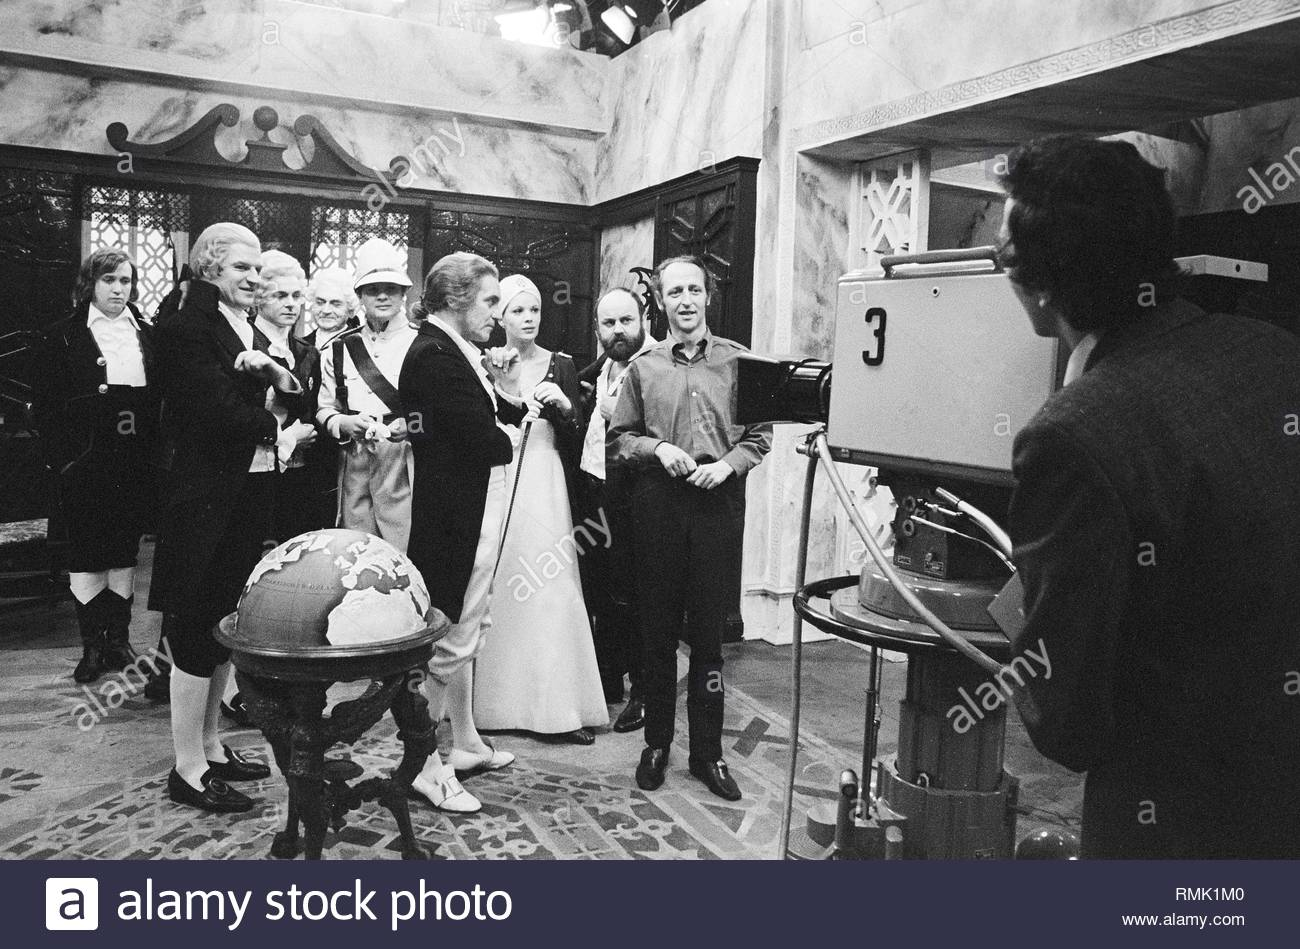 Photographs in historical costumes in a studio of the German television radio (DFF) in Adlershof in Berlin, the former capital of the GDR, German democratic republic. Foto: Heinz Schönfeld Stock Photo